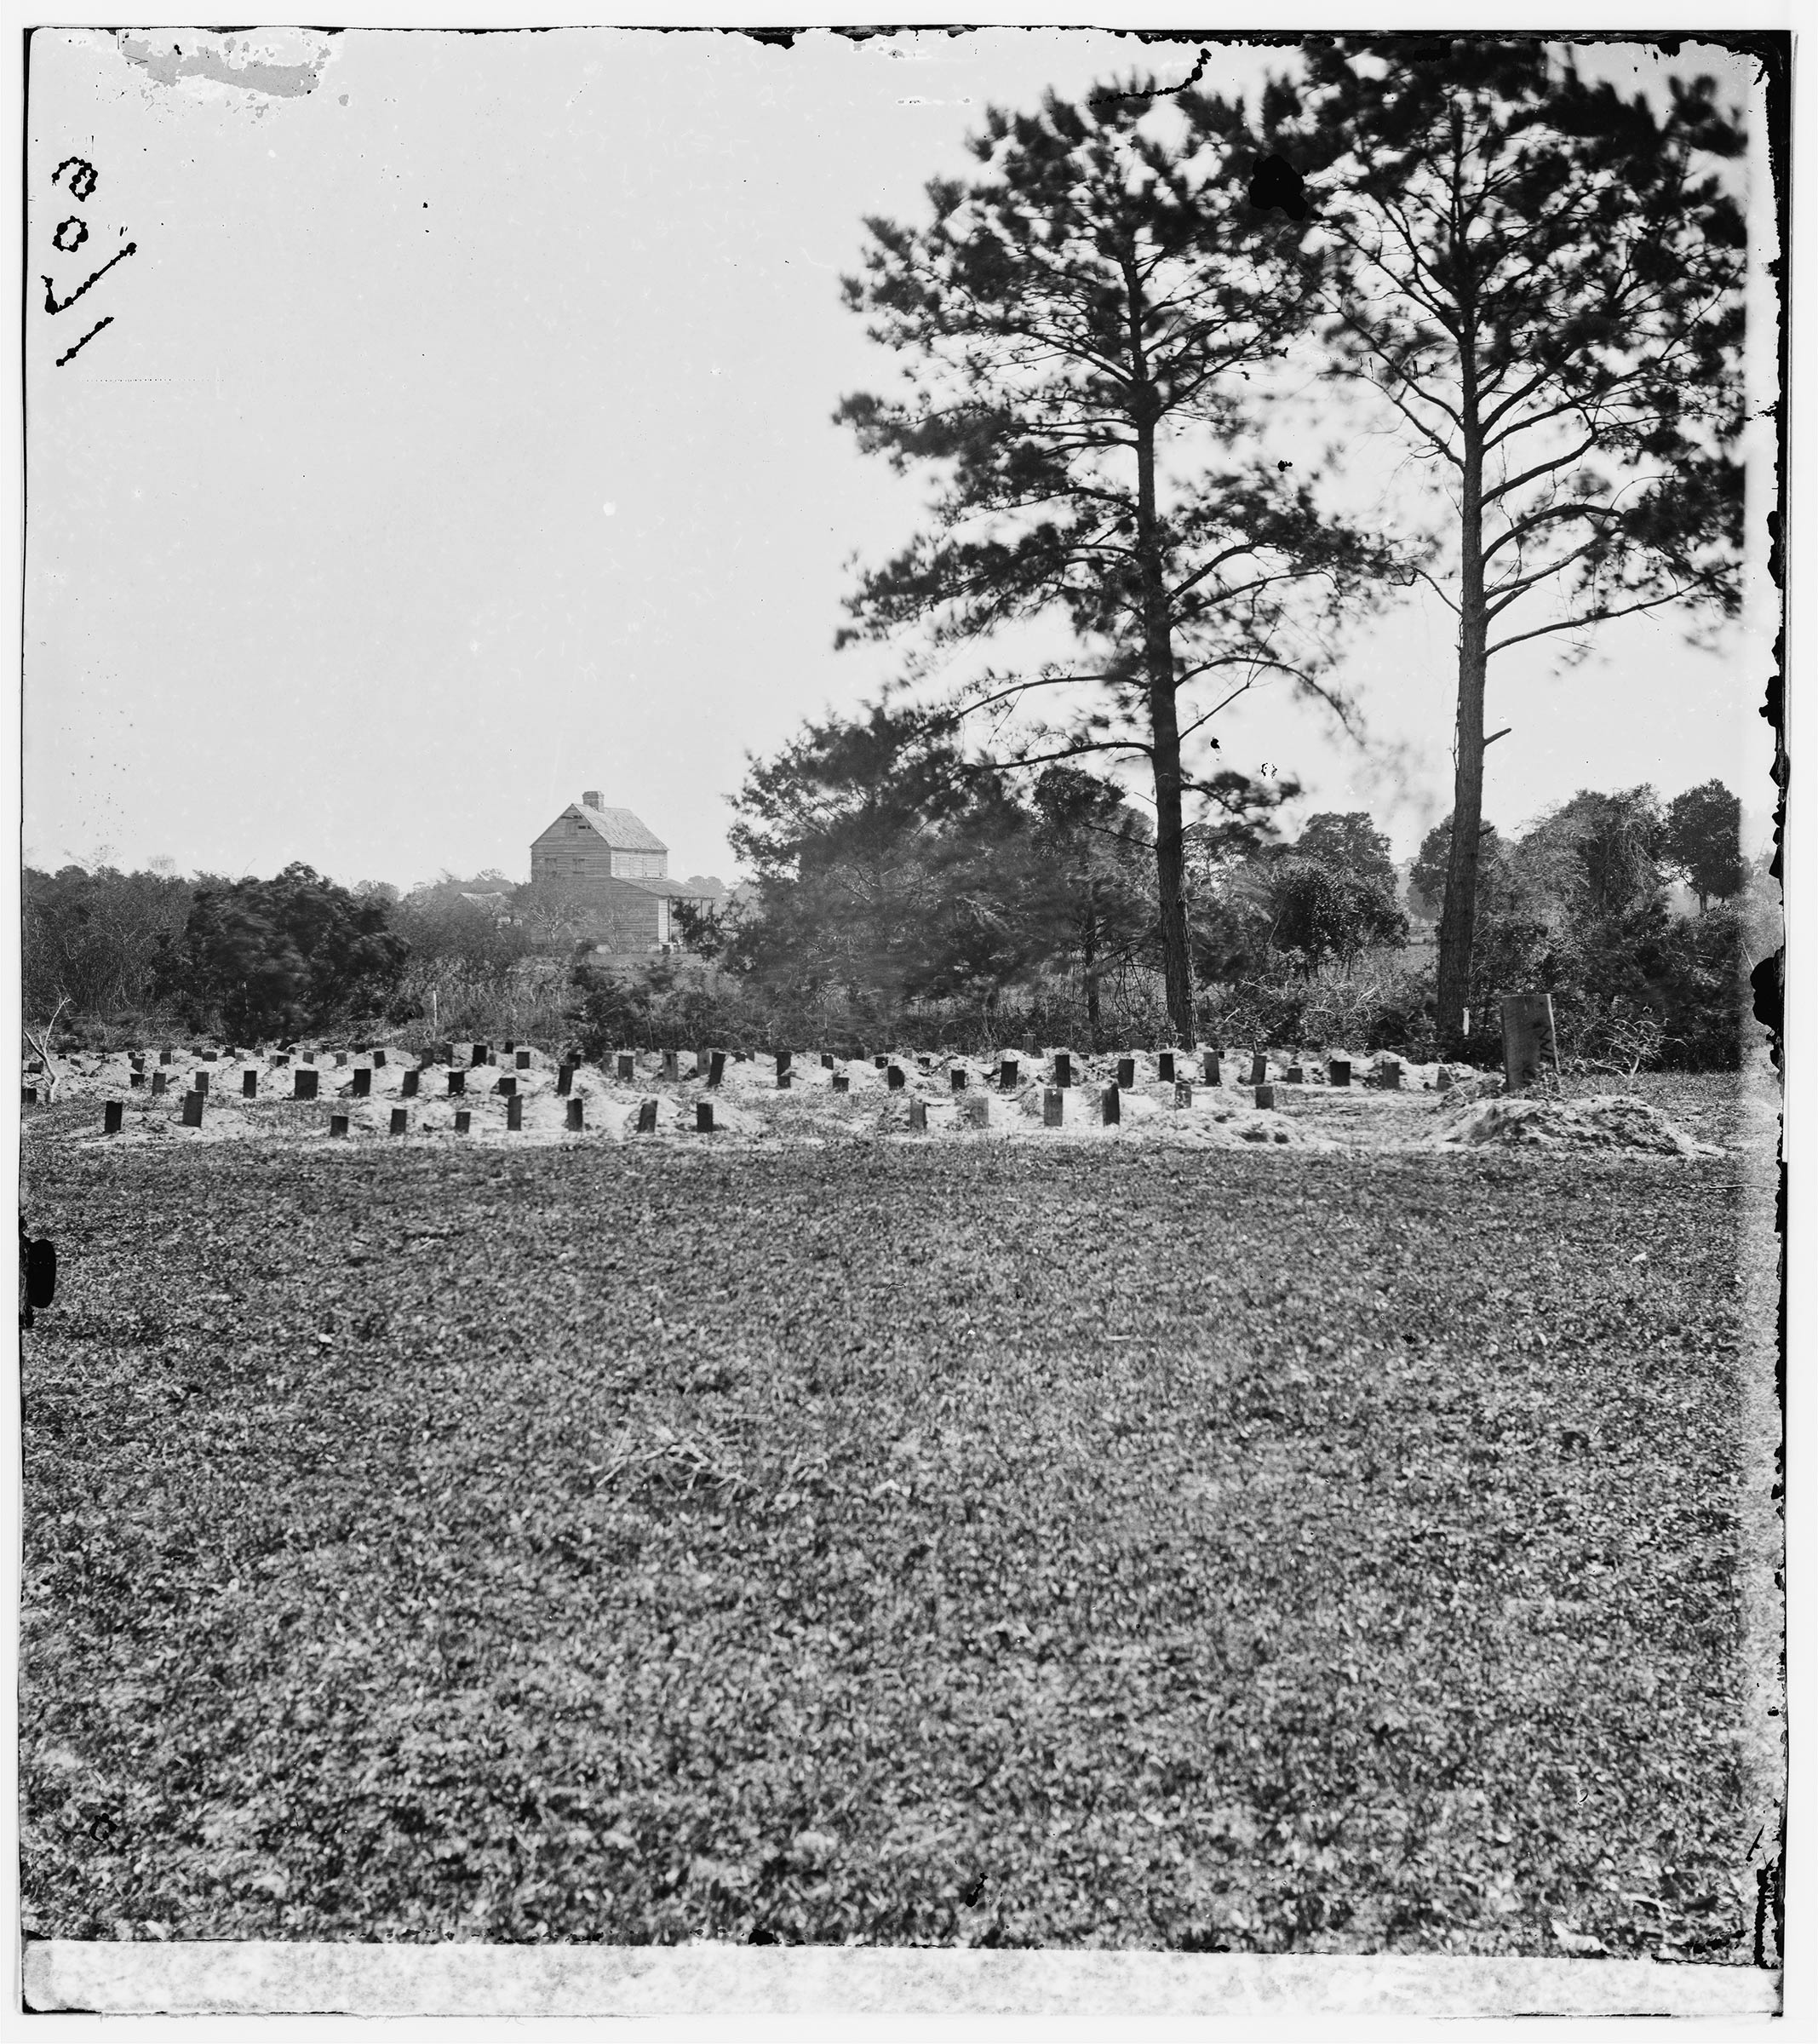 An April 1865 photo of the graves of Union soldiers buried at the race course-turned-Confederate-prison where historians believe the earliest Memorial Day ceremony took place.